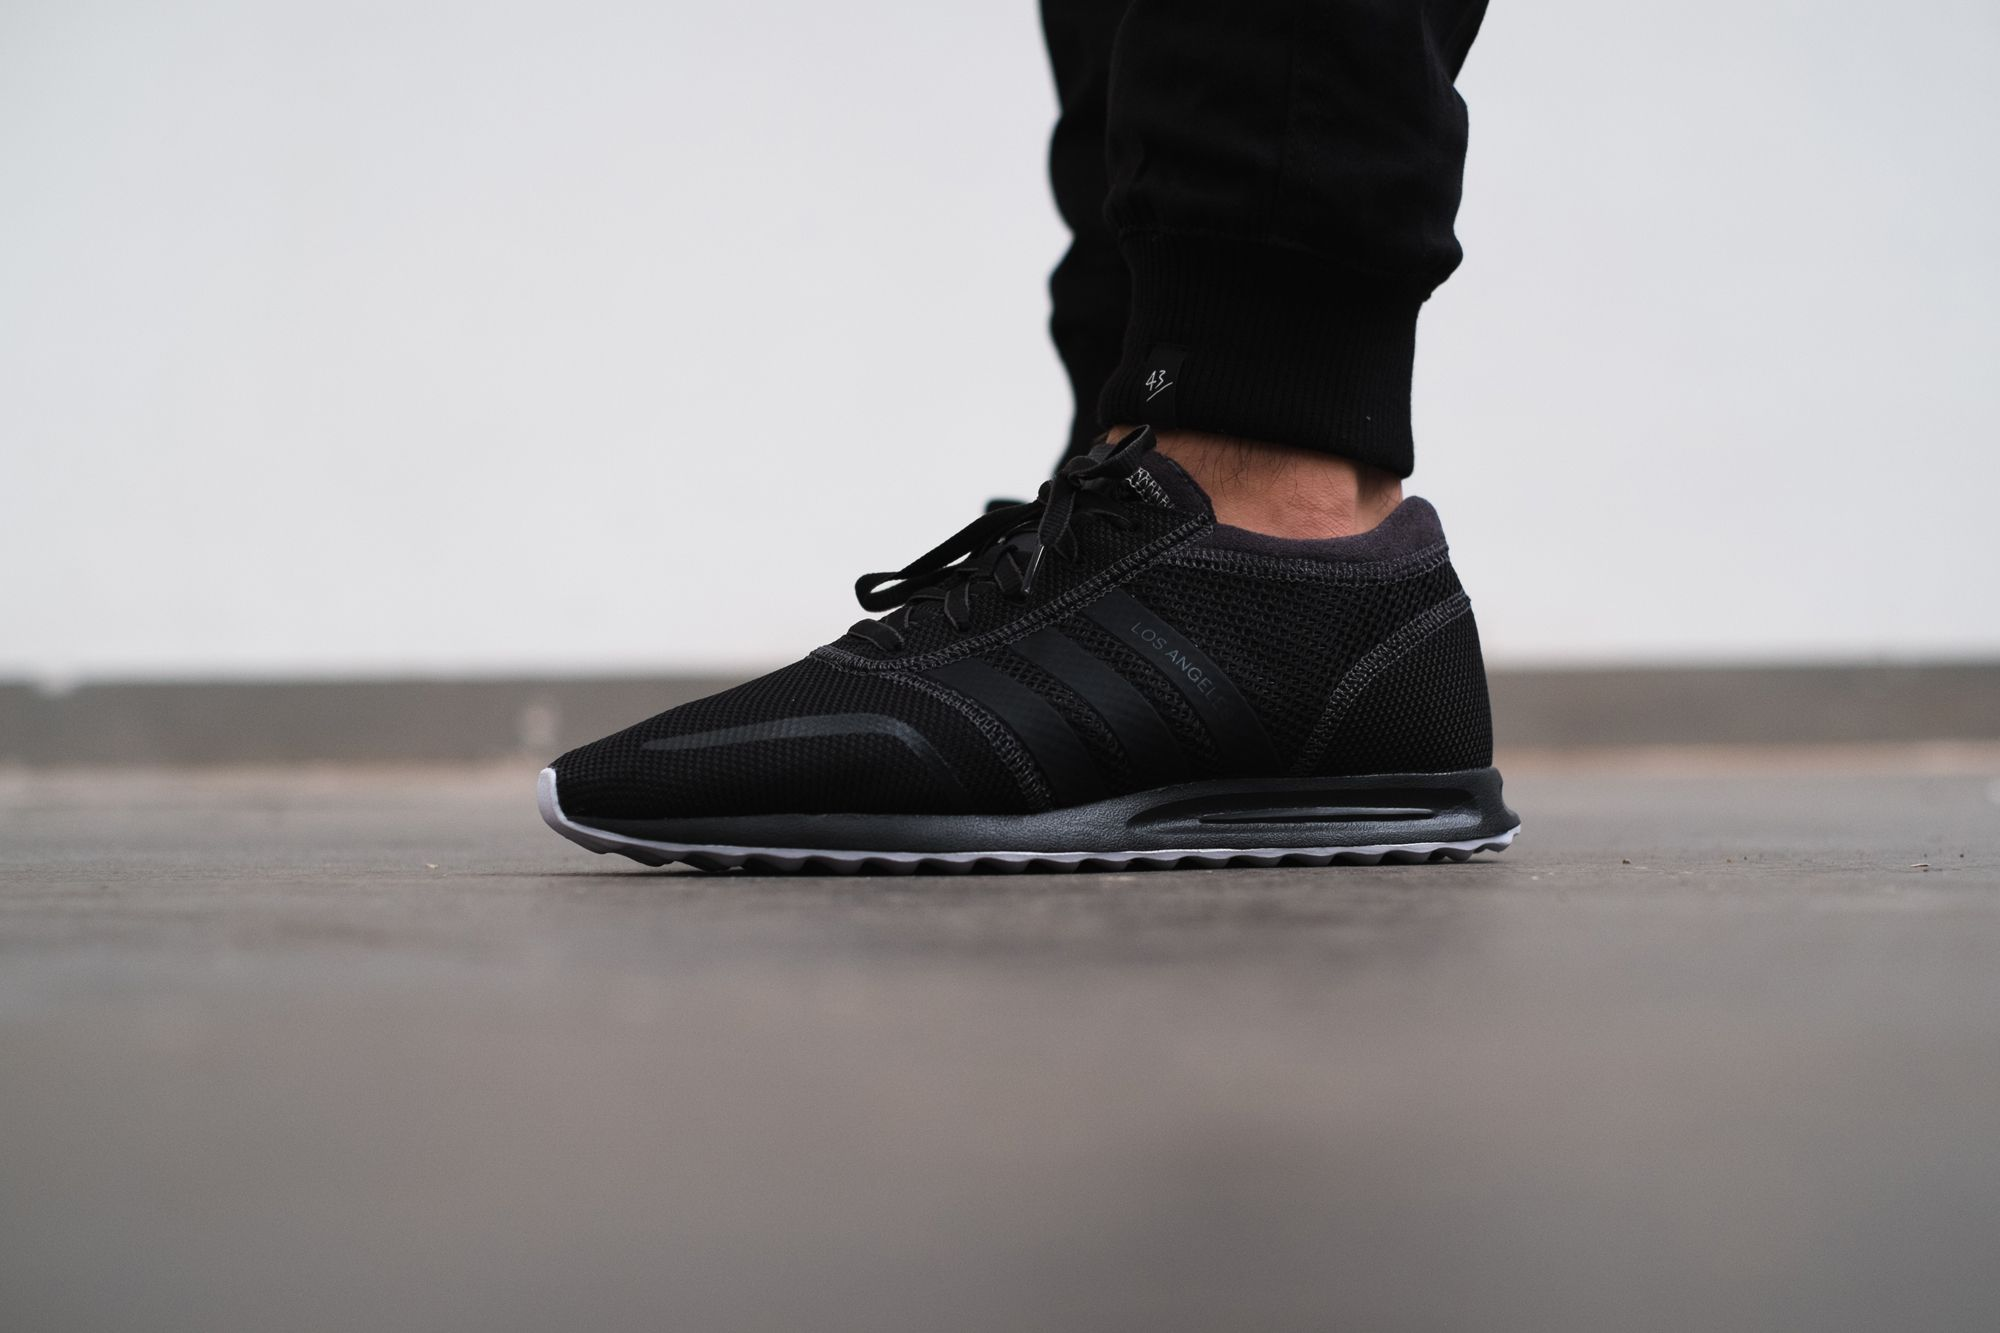 Looks f***ing tight in Black as well, right? The adidas